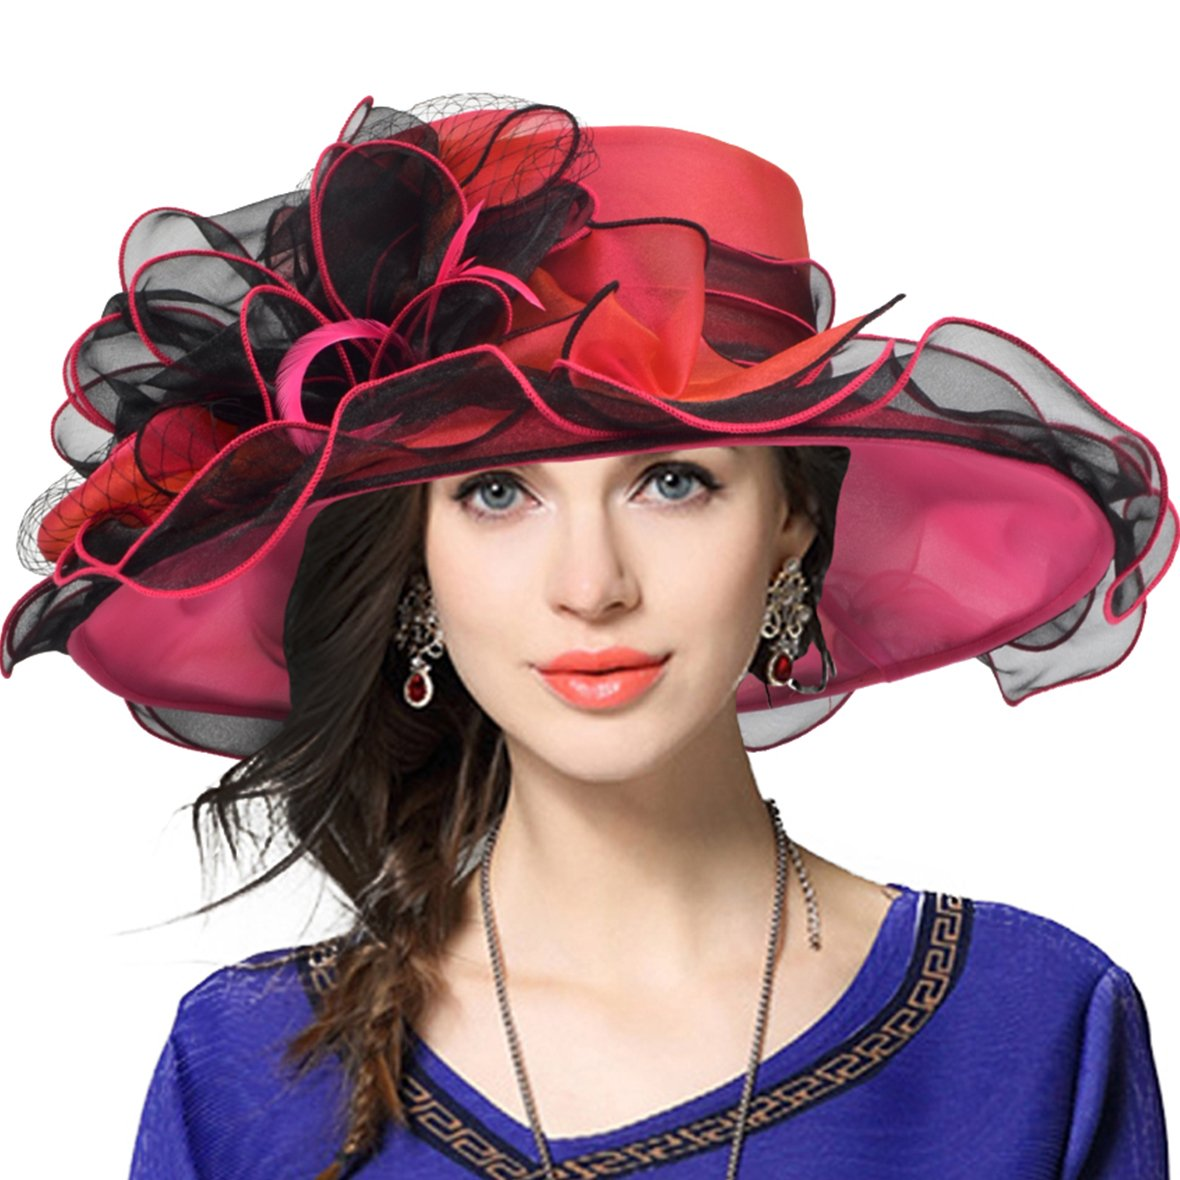 JESSE · RENA Women's Church Derby Dress Fascinator Bridal Cap British Tea Party Wedding Hat (Two-Tone-Hot Pink) by JESSE · RENA (Image #1)